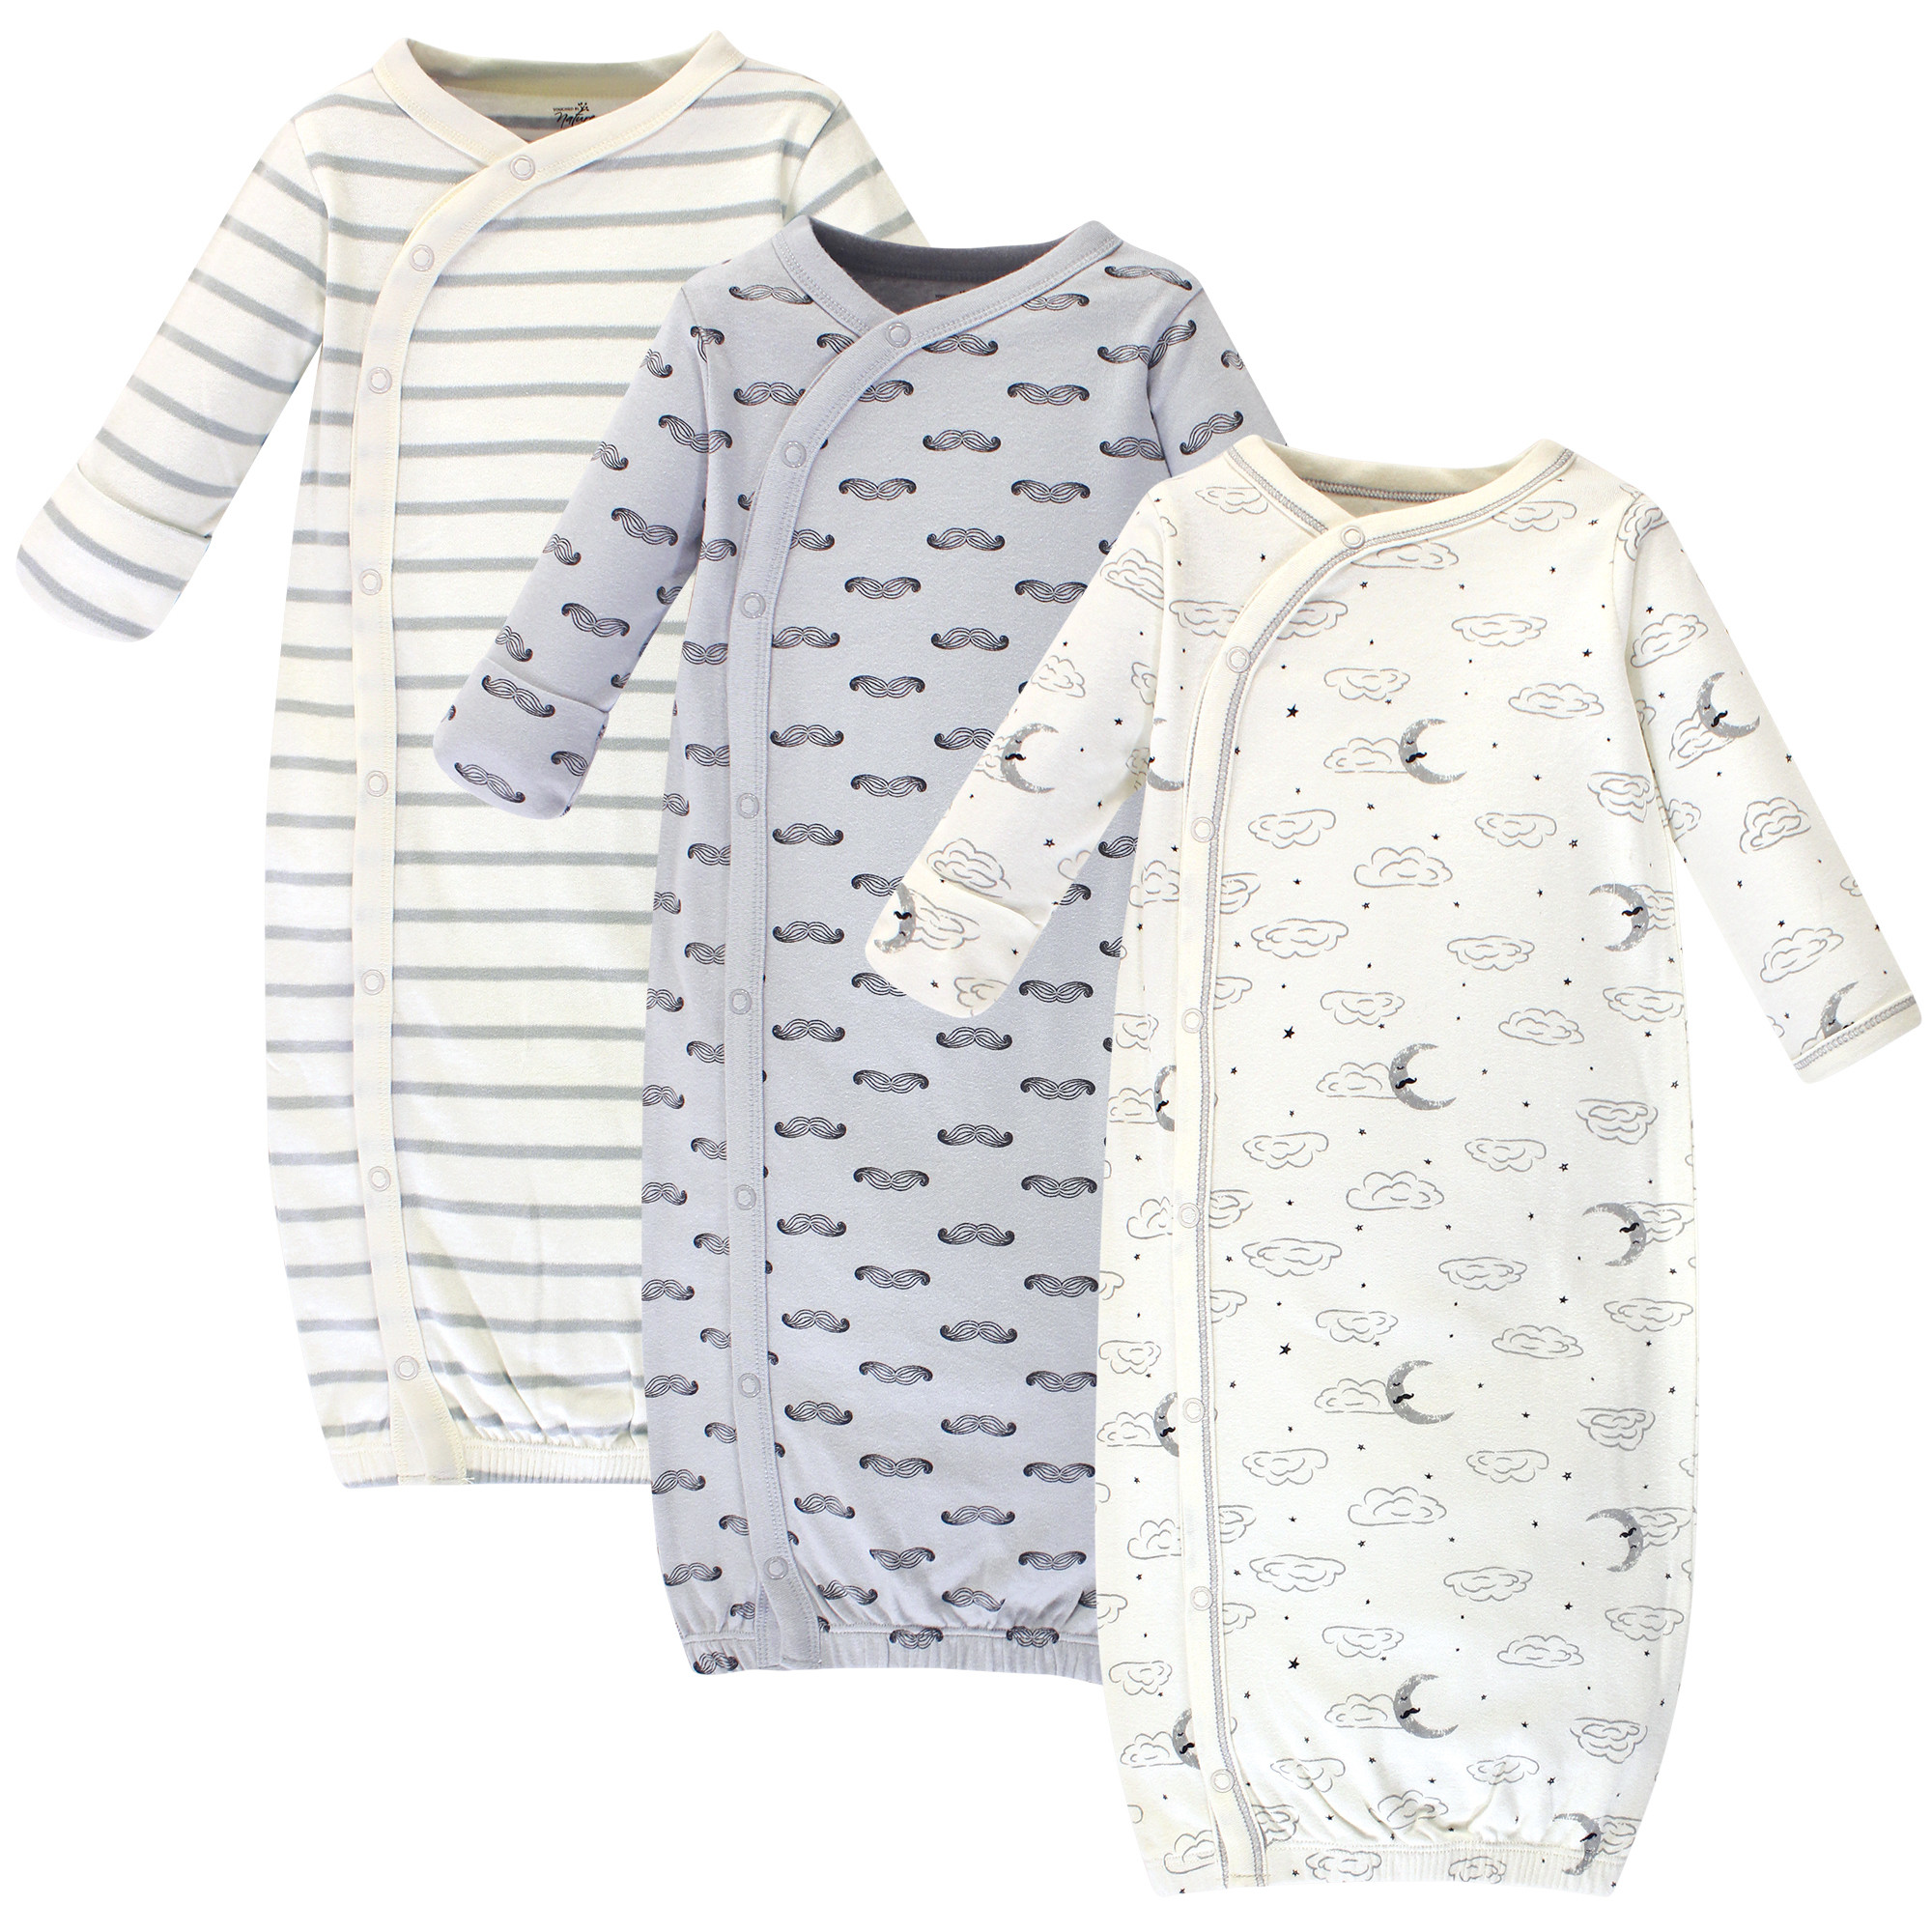 Touched by Nature Baby Organic Cotton Kimono Gowns Hedgehog Preemie